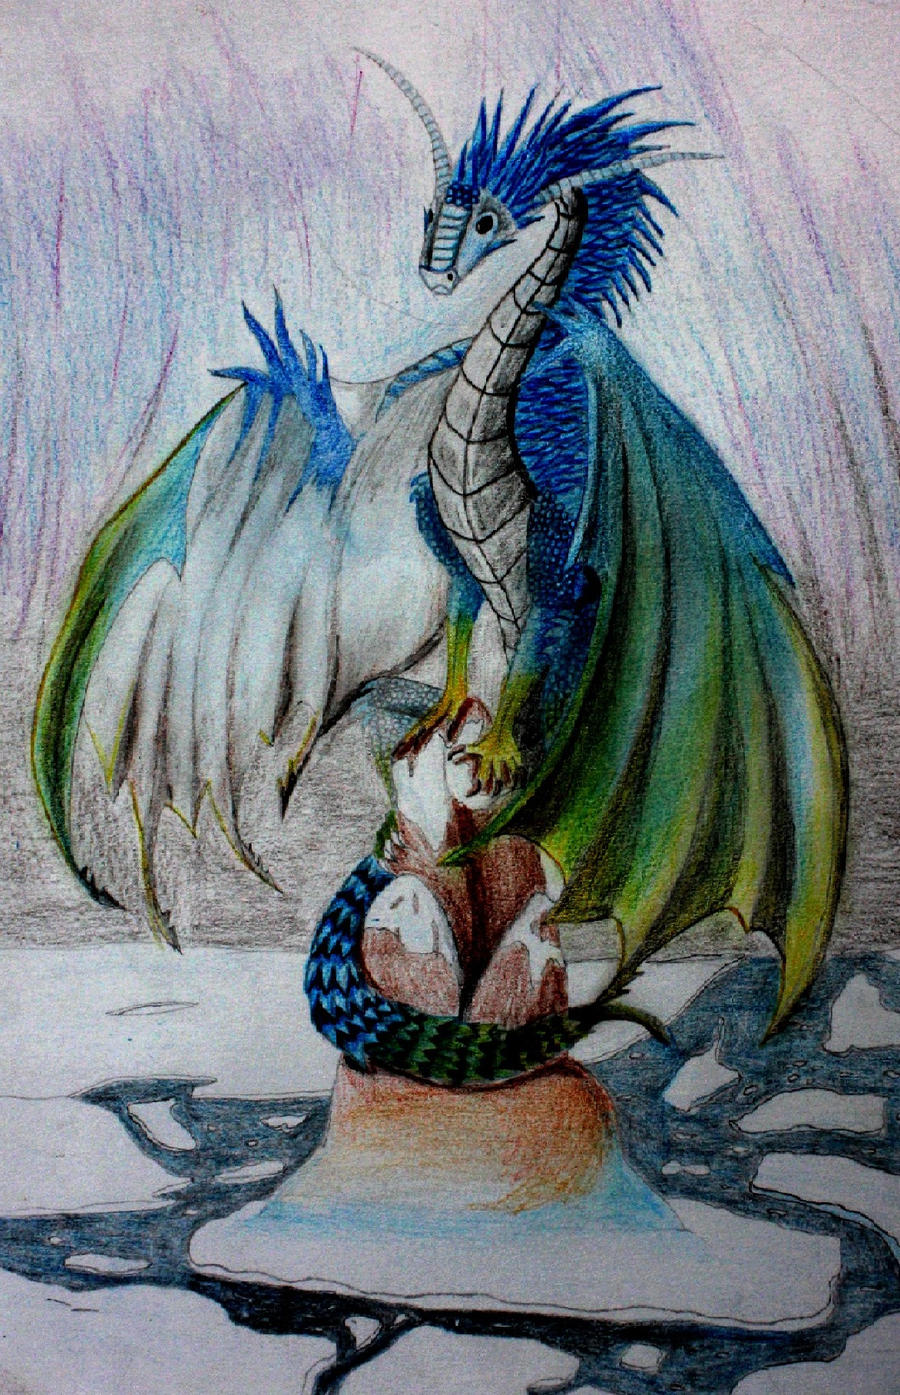 Dragon des Glaces by Cassyblue